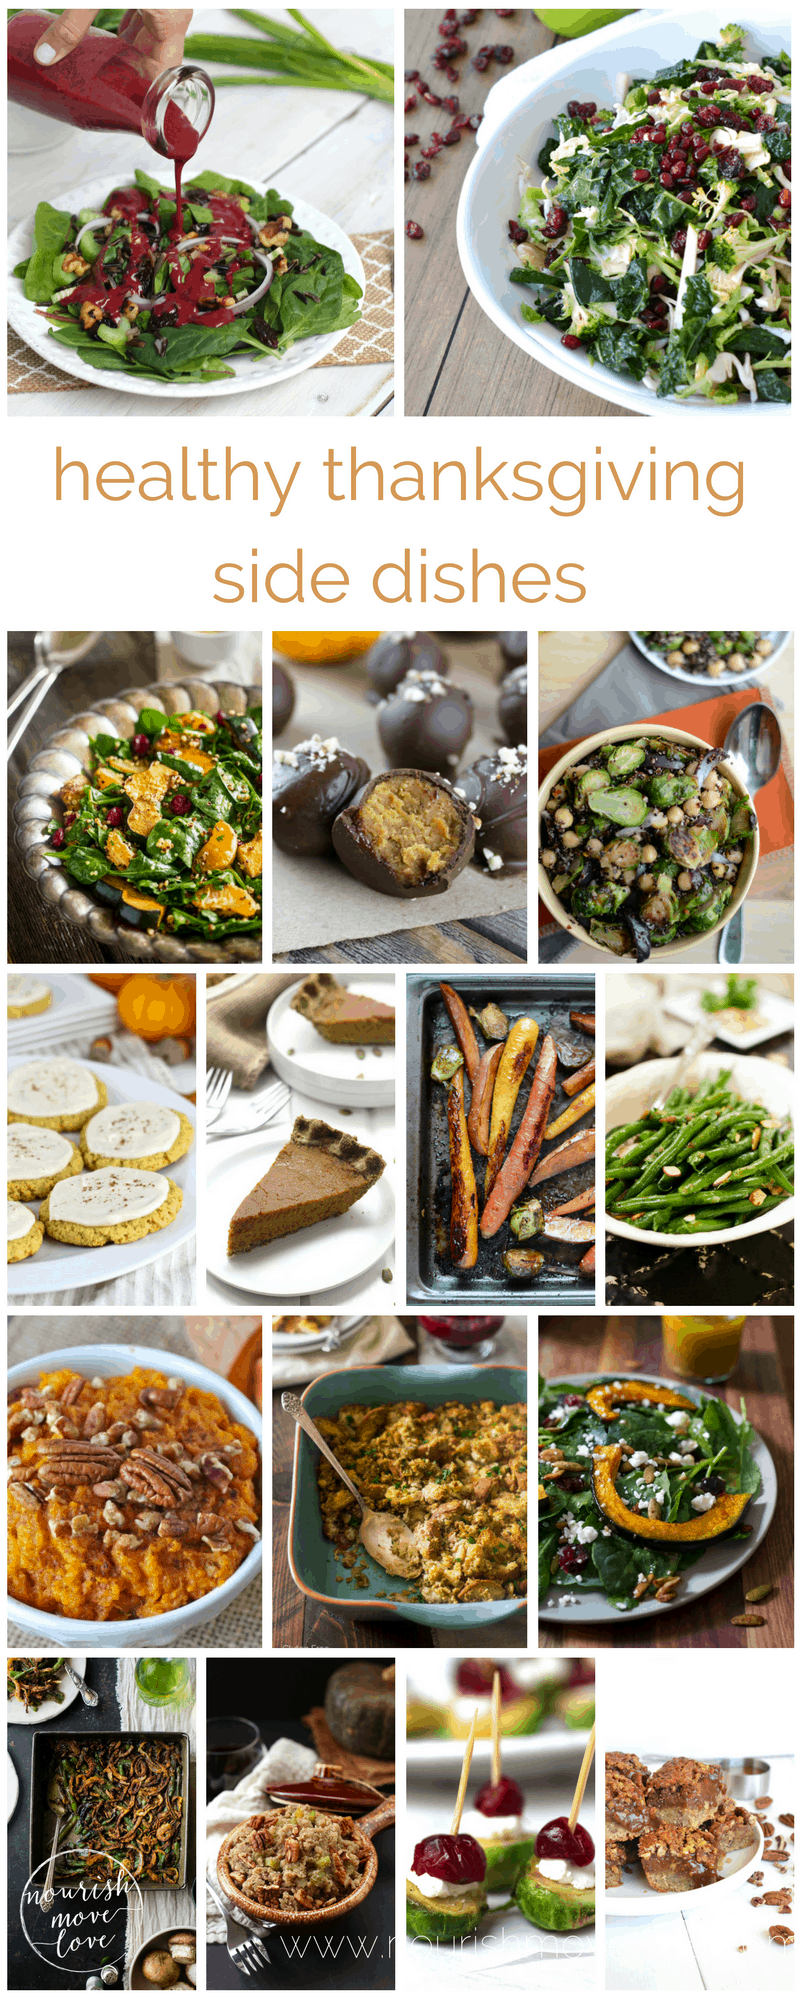 healthy thanksgiving side dishes + desserts | www.nourishmovelove.com